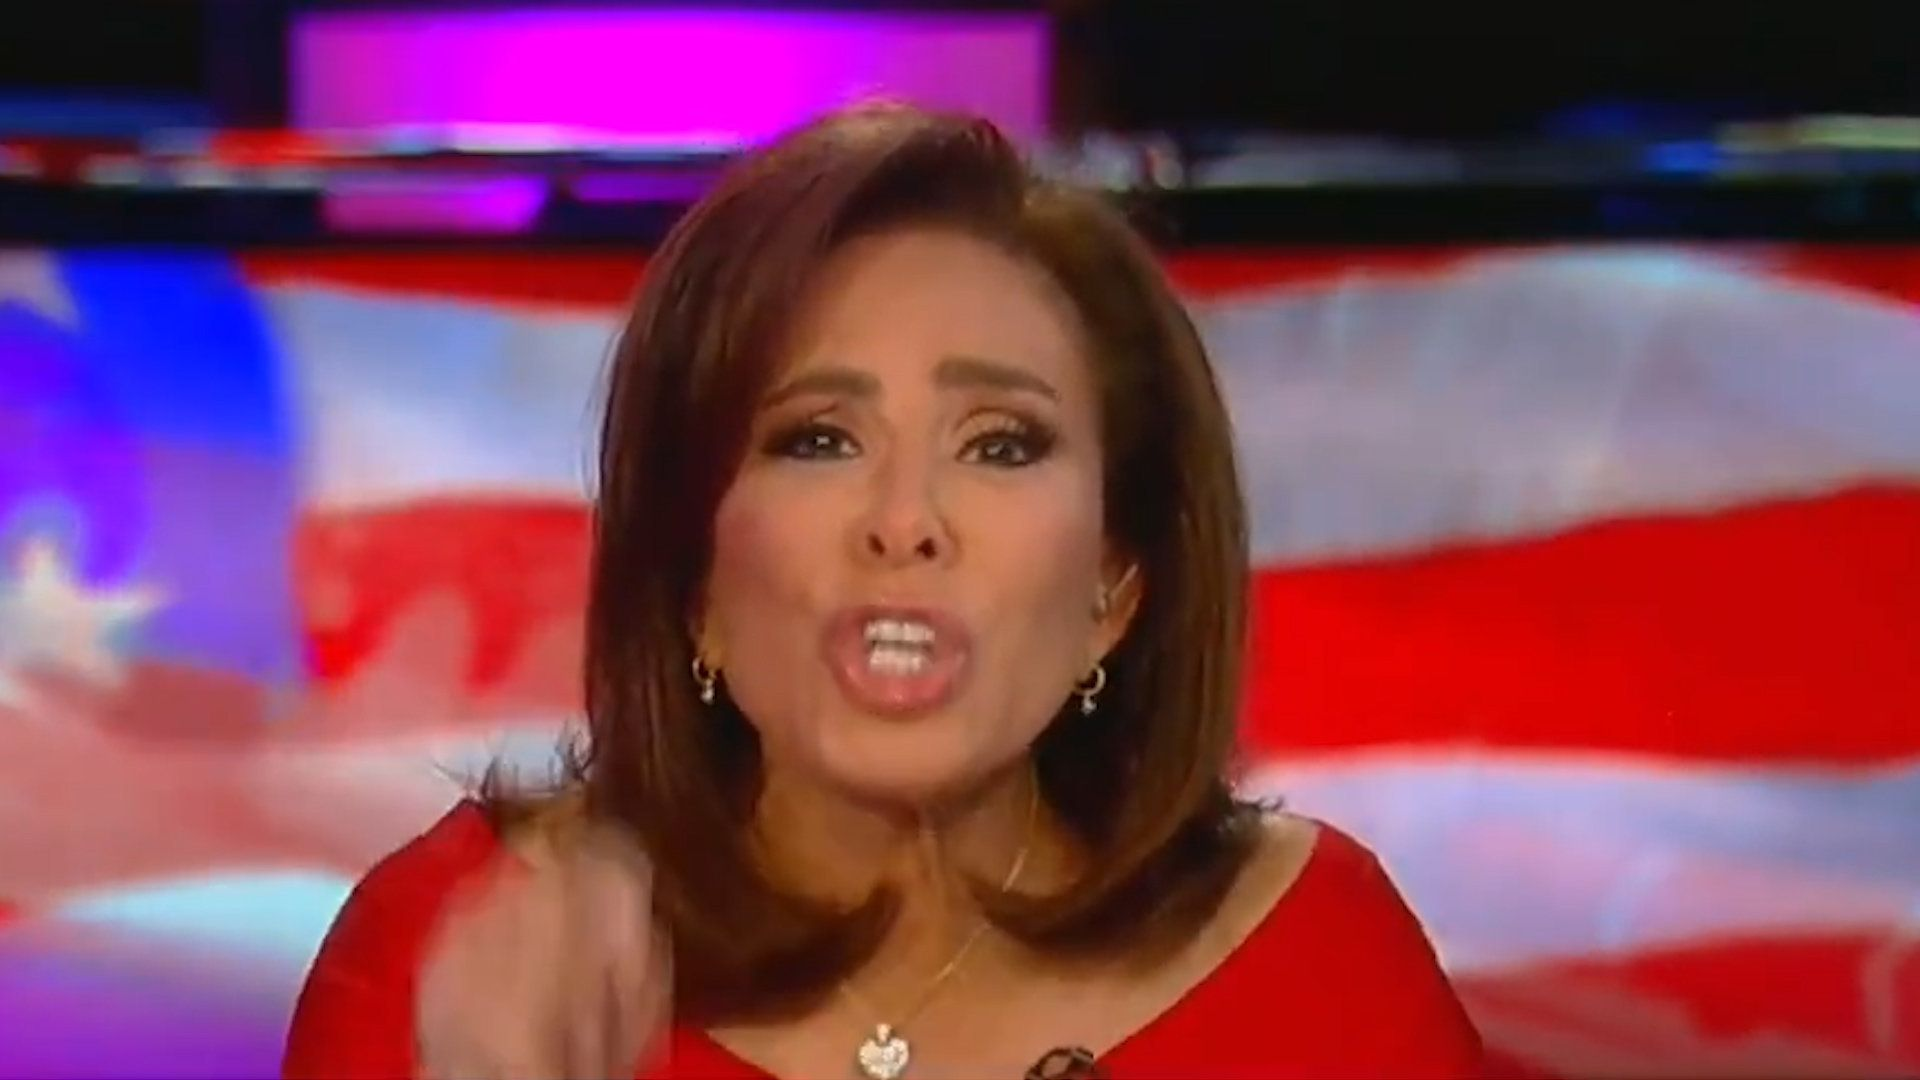 "This Fox News host made a blatantly Islamophobic attack on Ilhan Omar—now both she and the network are backtracking.                 This video, ""<a href=""https://www.nowthisnews.com/videos/politics/fox-news-jeanine-pirros-islamophobic-comments-on-ilhan-omar"">Fox News Separates Network From Jeanine Pirro's Islamophobic Comments on Ilhan Omar </a>"", first appeared on               <a href=""https://www.nowthisnews.com"">nowthisnews.com</a>."